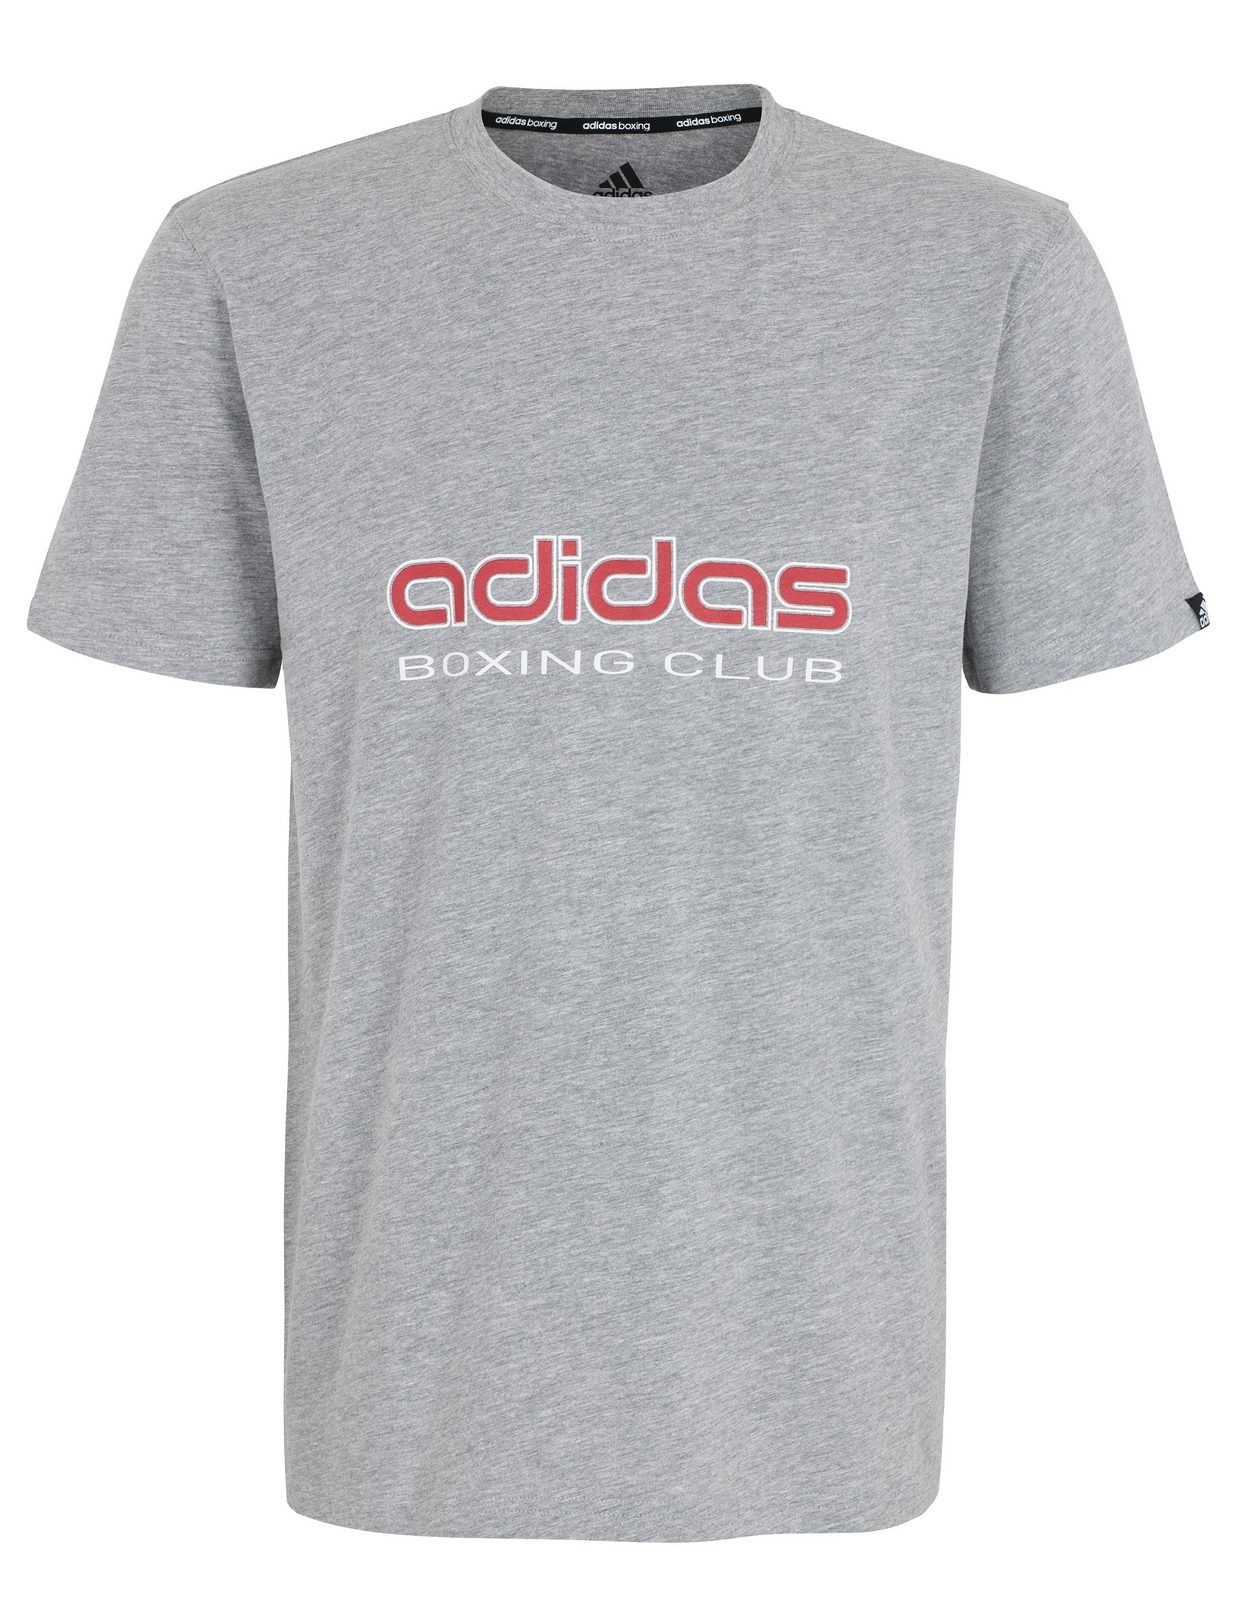 adidas Performance T-Shirt, »Boxing Club«